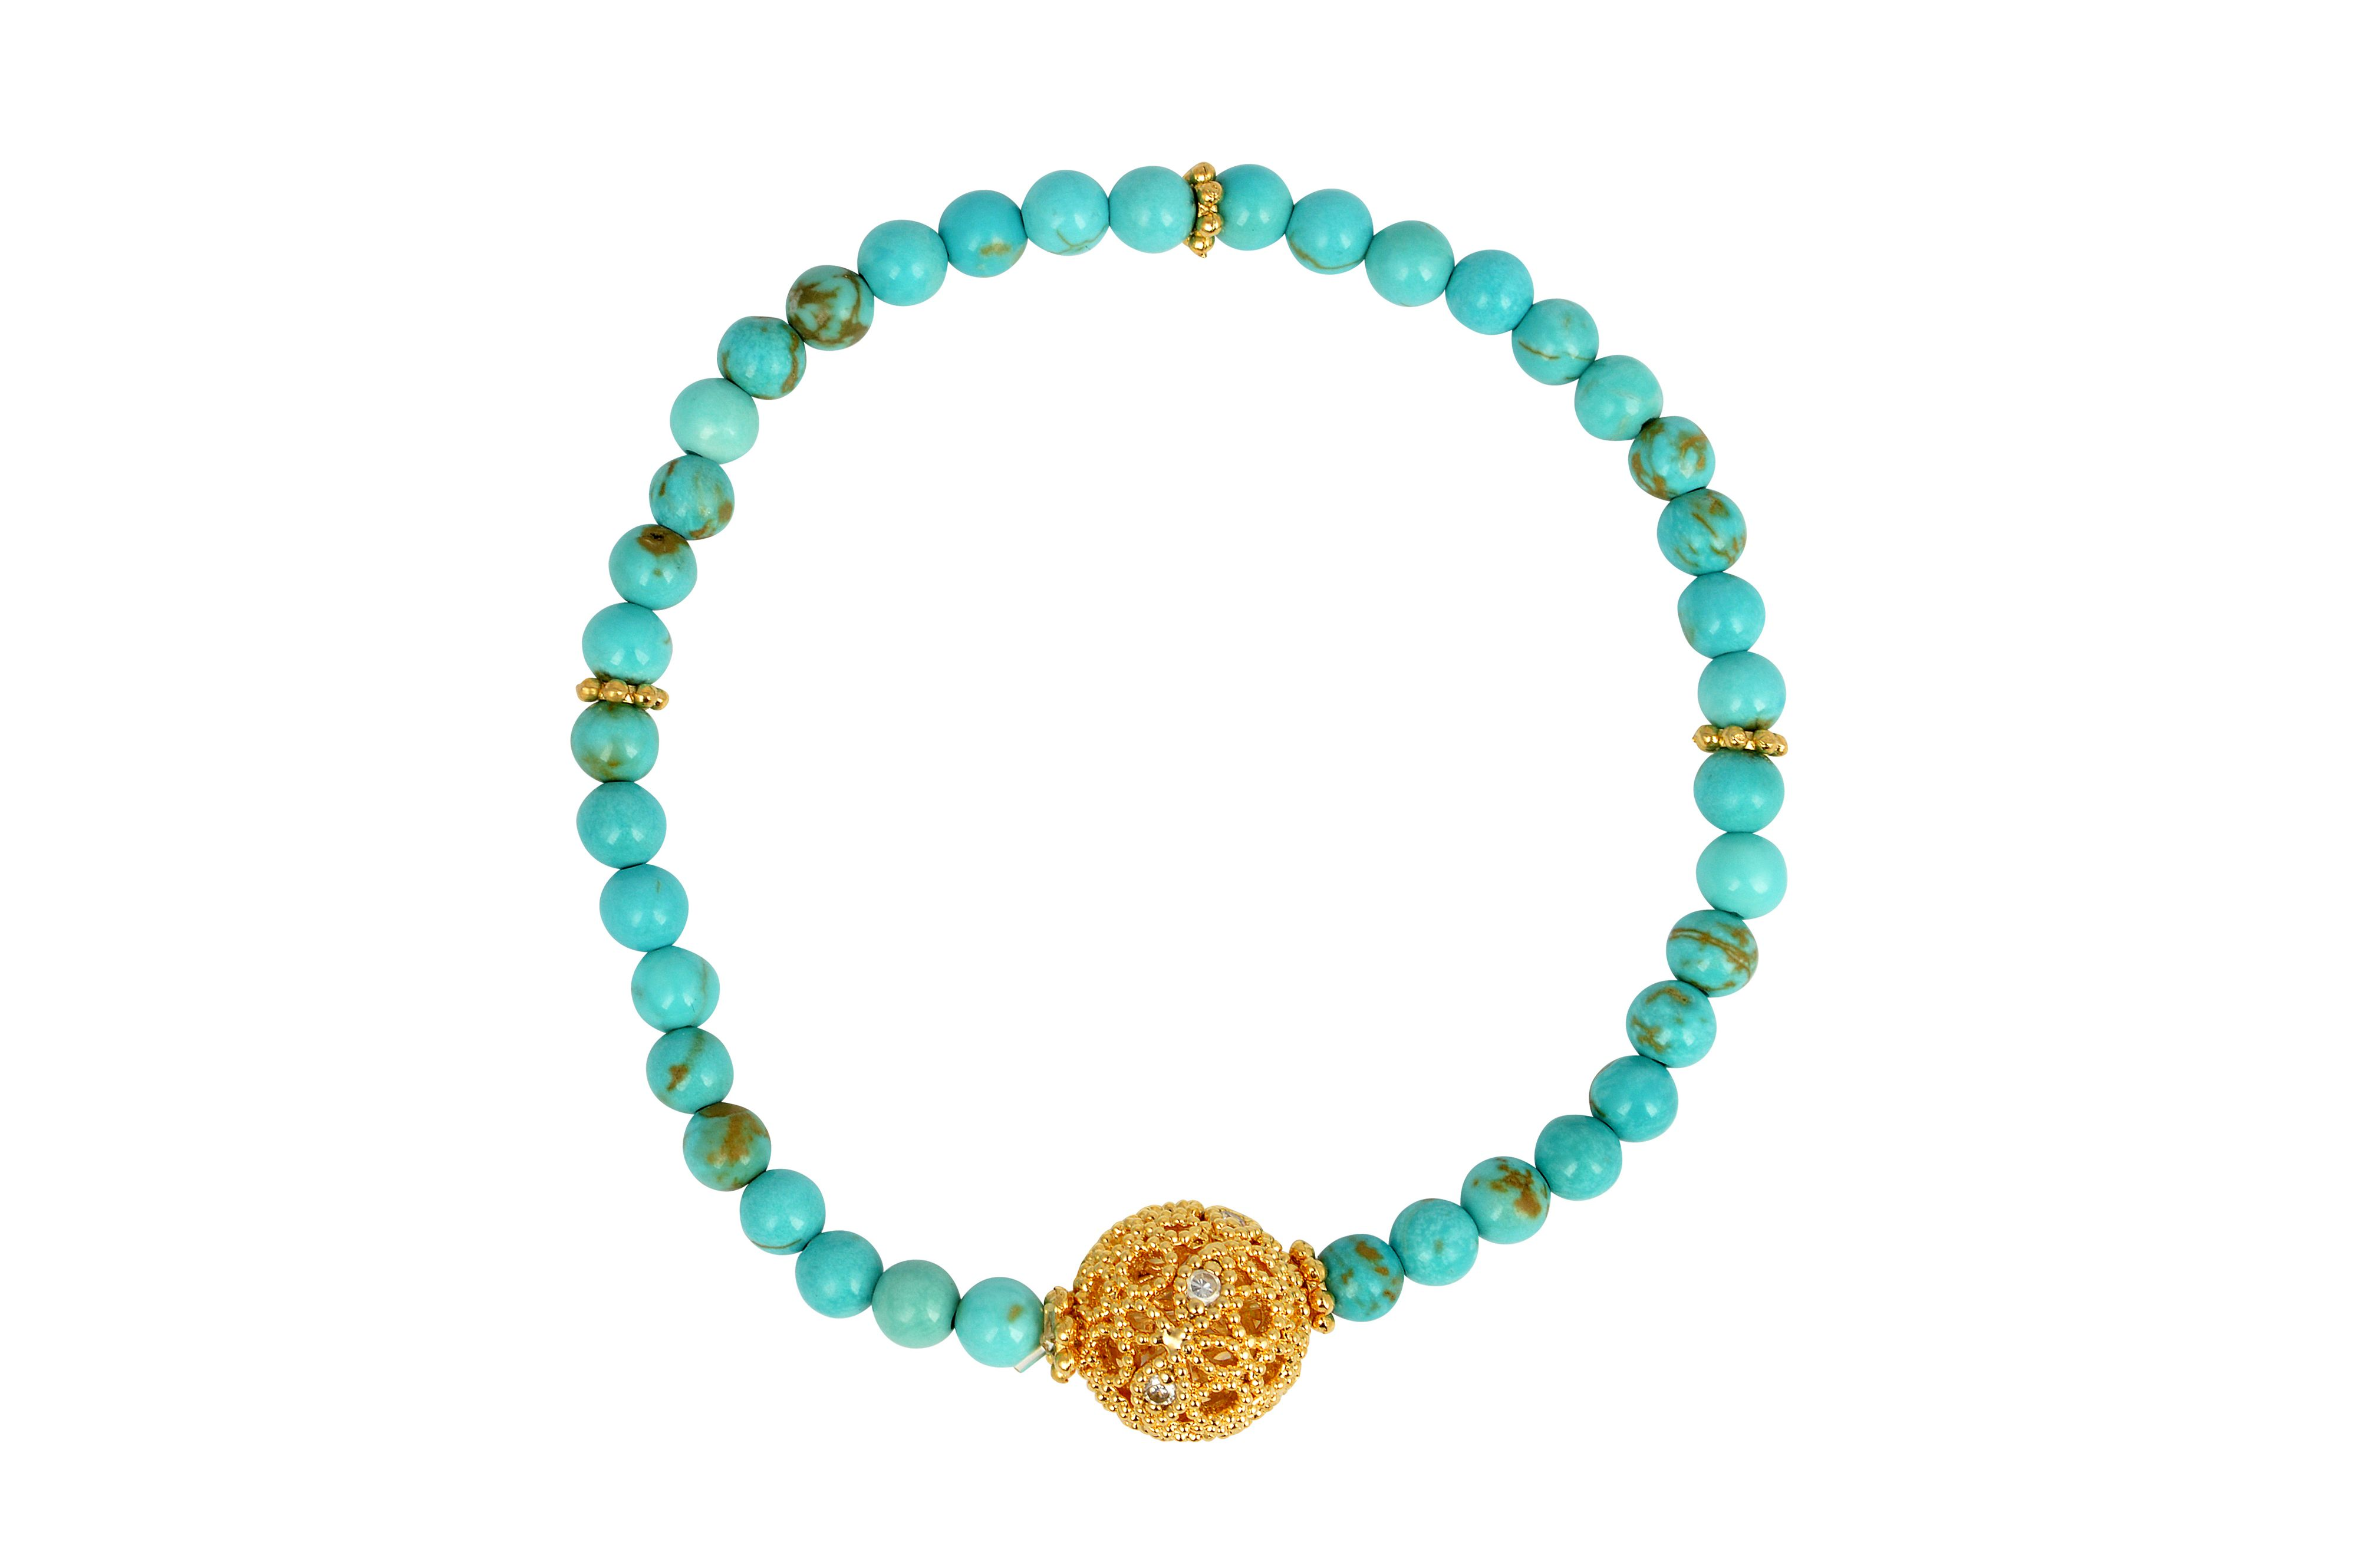 Turquoise stone stretch friendship bracelet